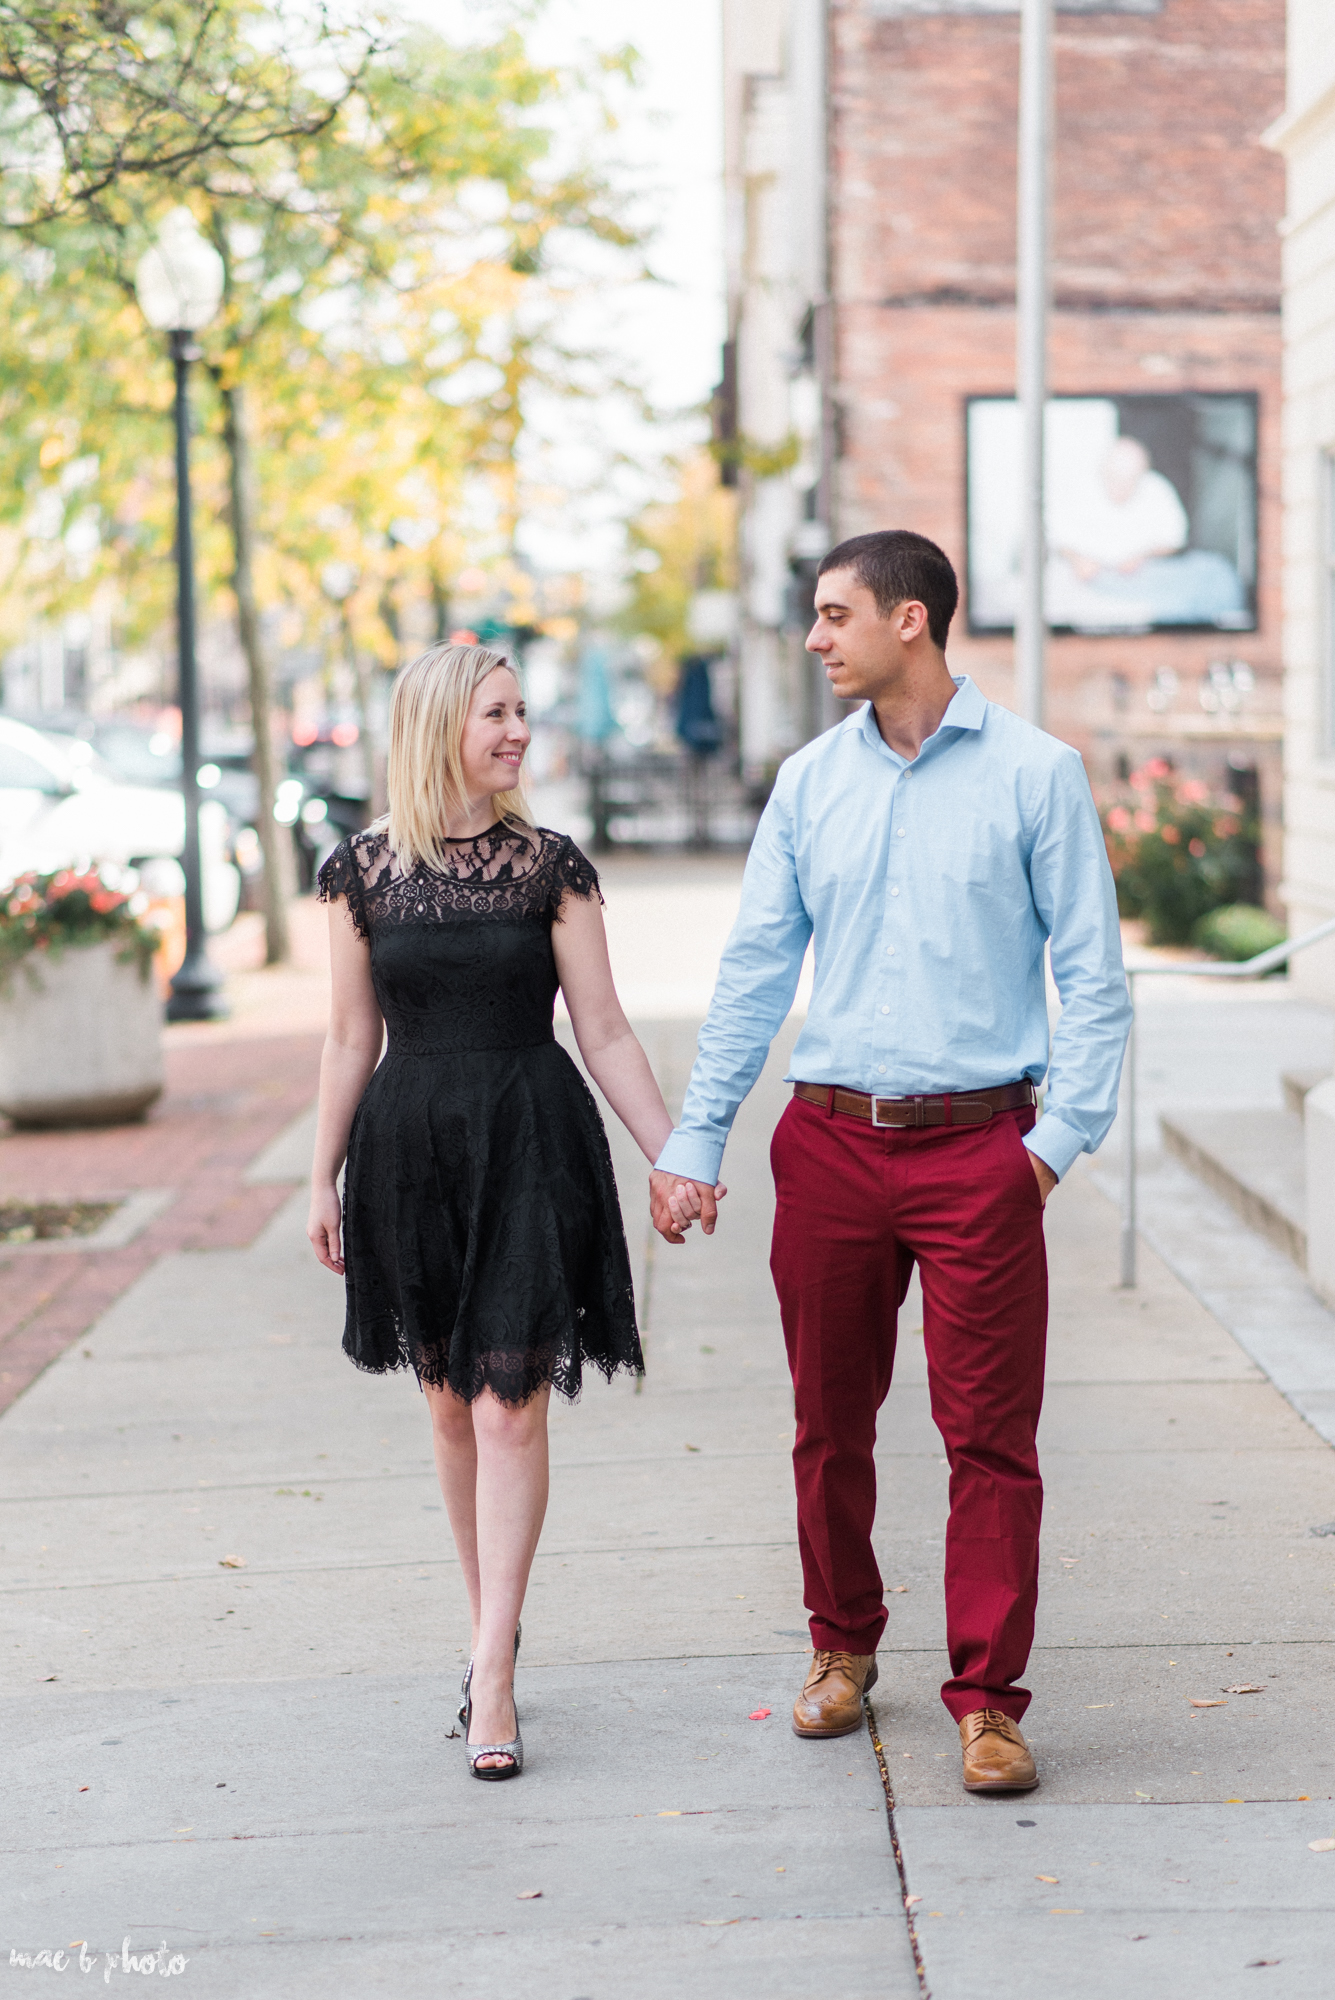 Emily & Michael's Lifestyle Engagement Session in Youngstown Ohio by Mae B Photo-59.jpg